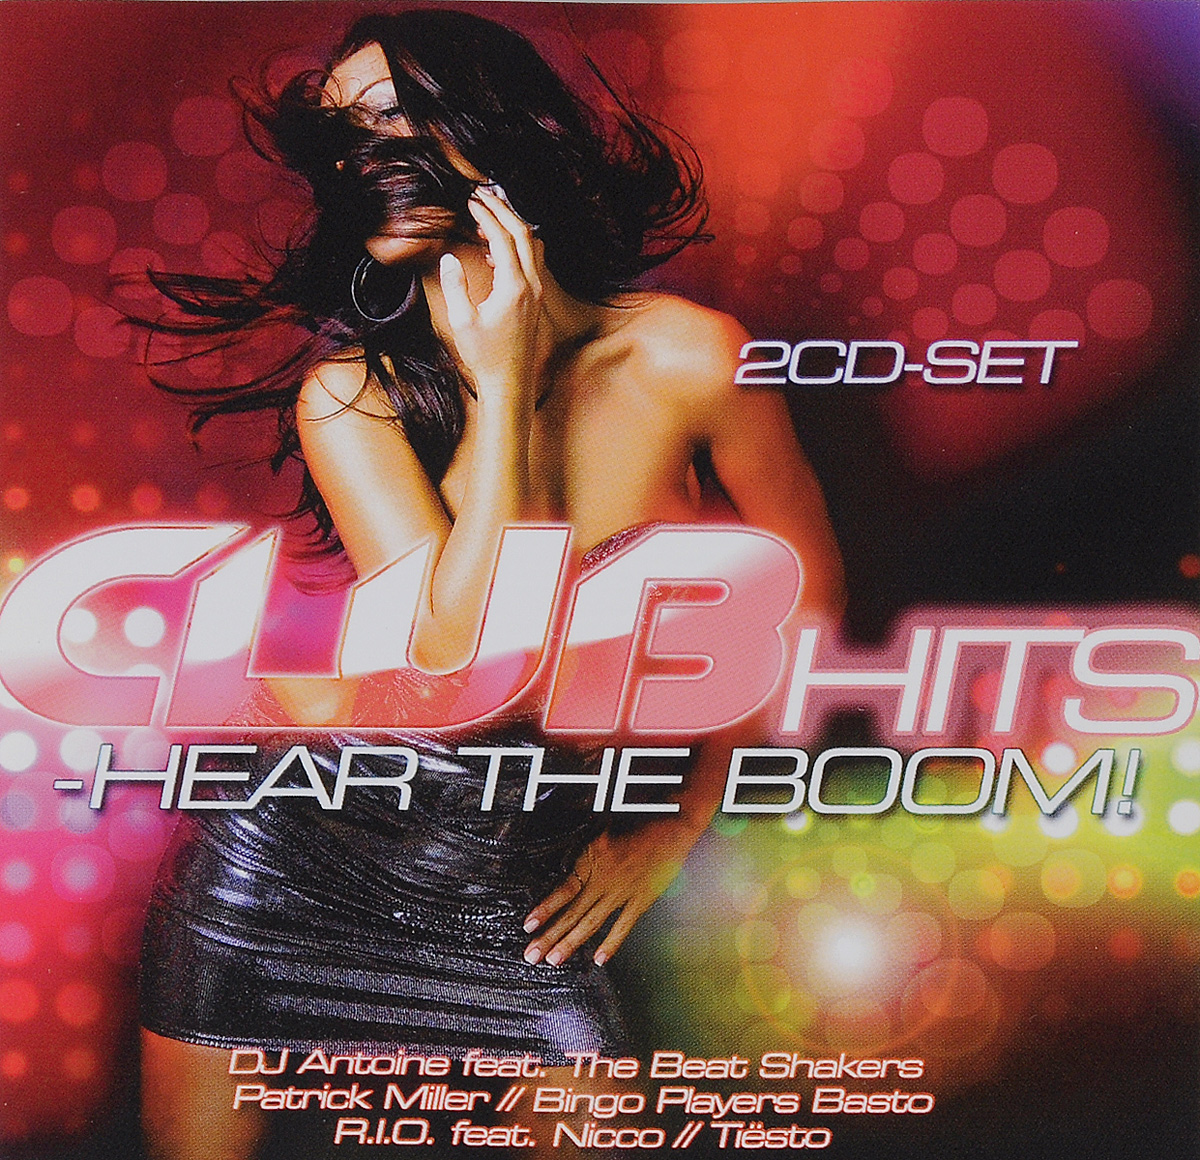 цена Club Hits. Hear The Boom (2 CD) онлайн в 2017 году